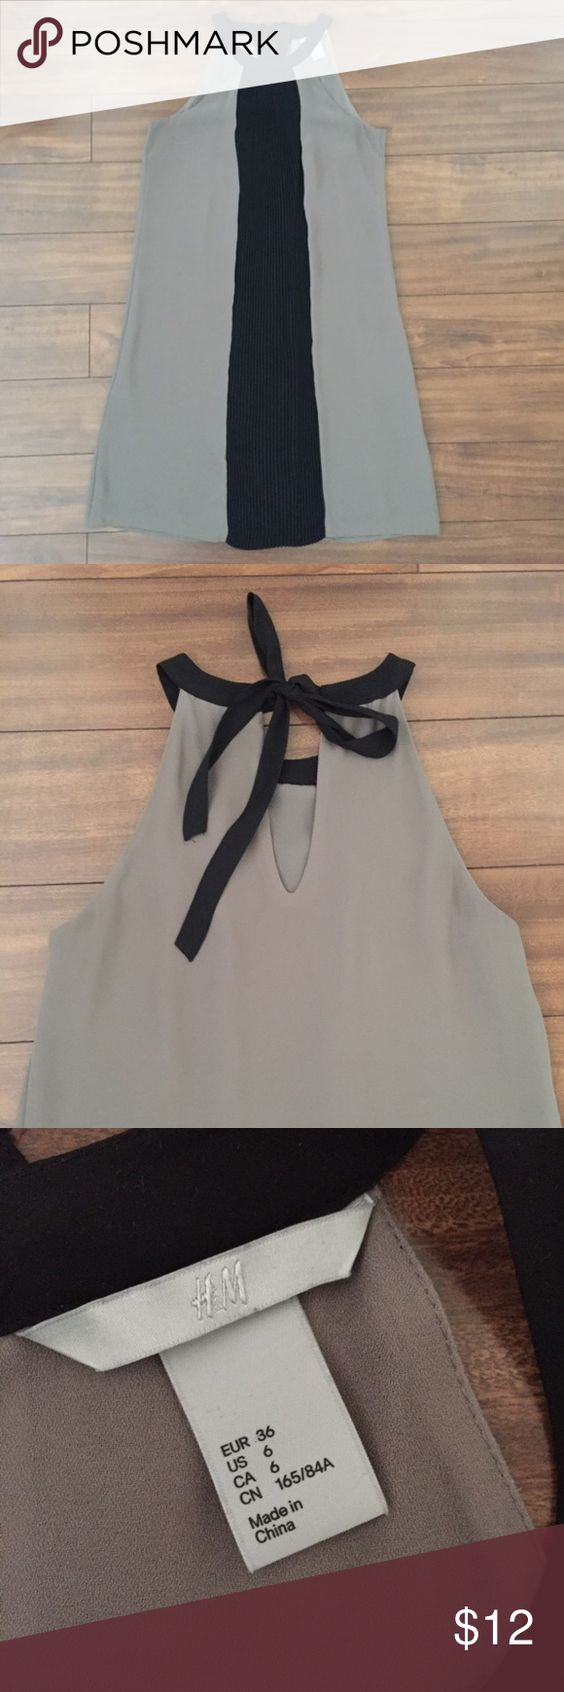 H&M Dress Grey and black dress. Ties in the back. Loose fit, hits above knees. It's size 6 but fits like an S. H&M Dresses